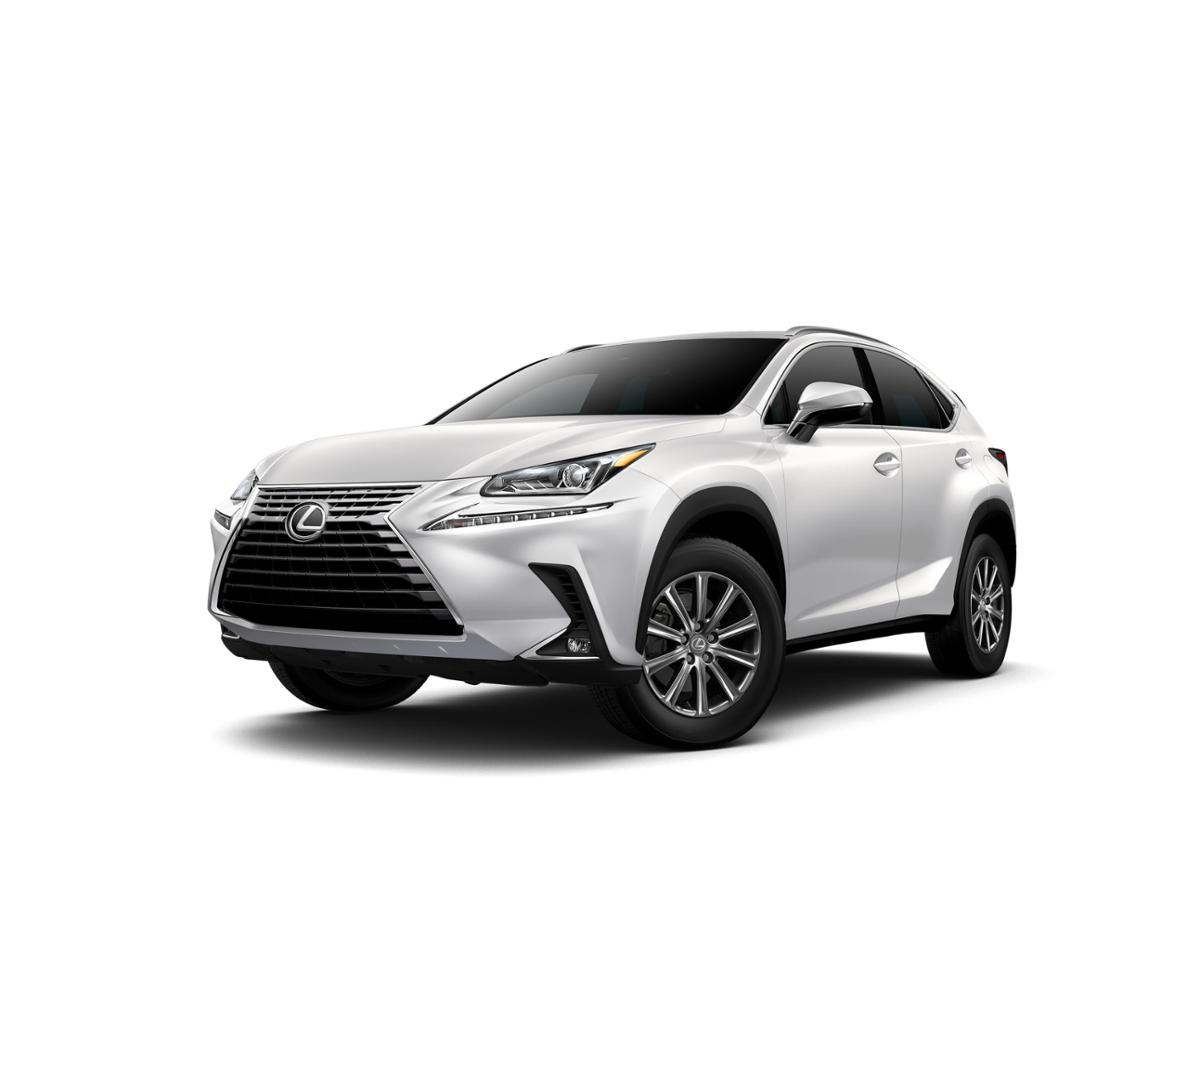 2019 Lexus NX 300 Vehicle Photo in El Monte, CA 91731